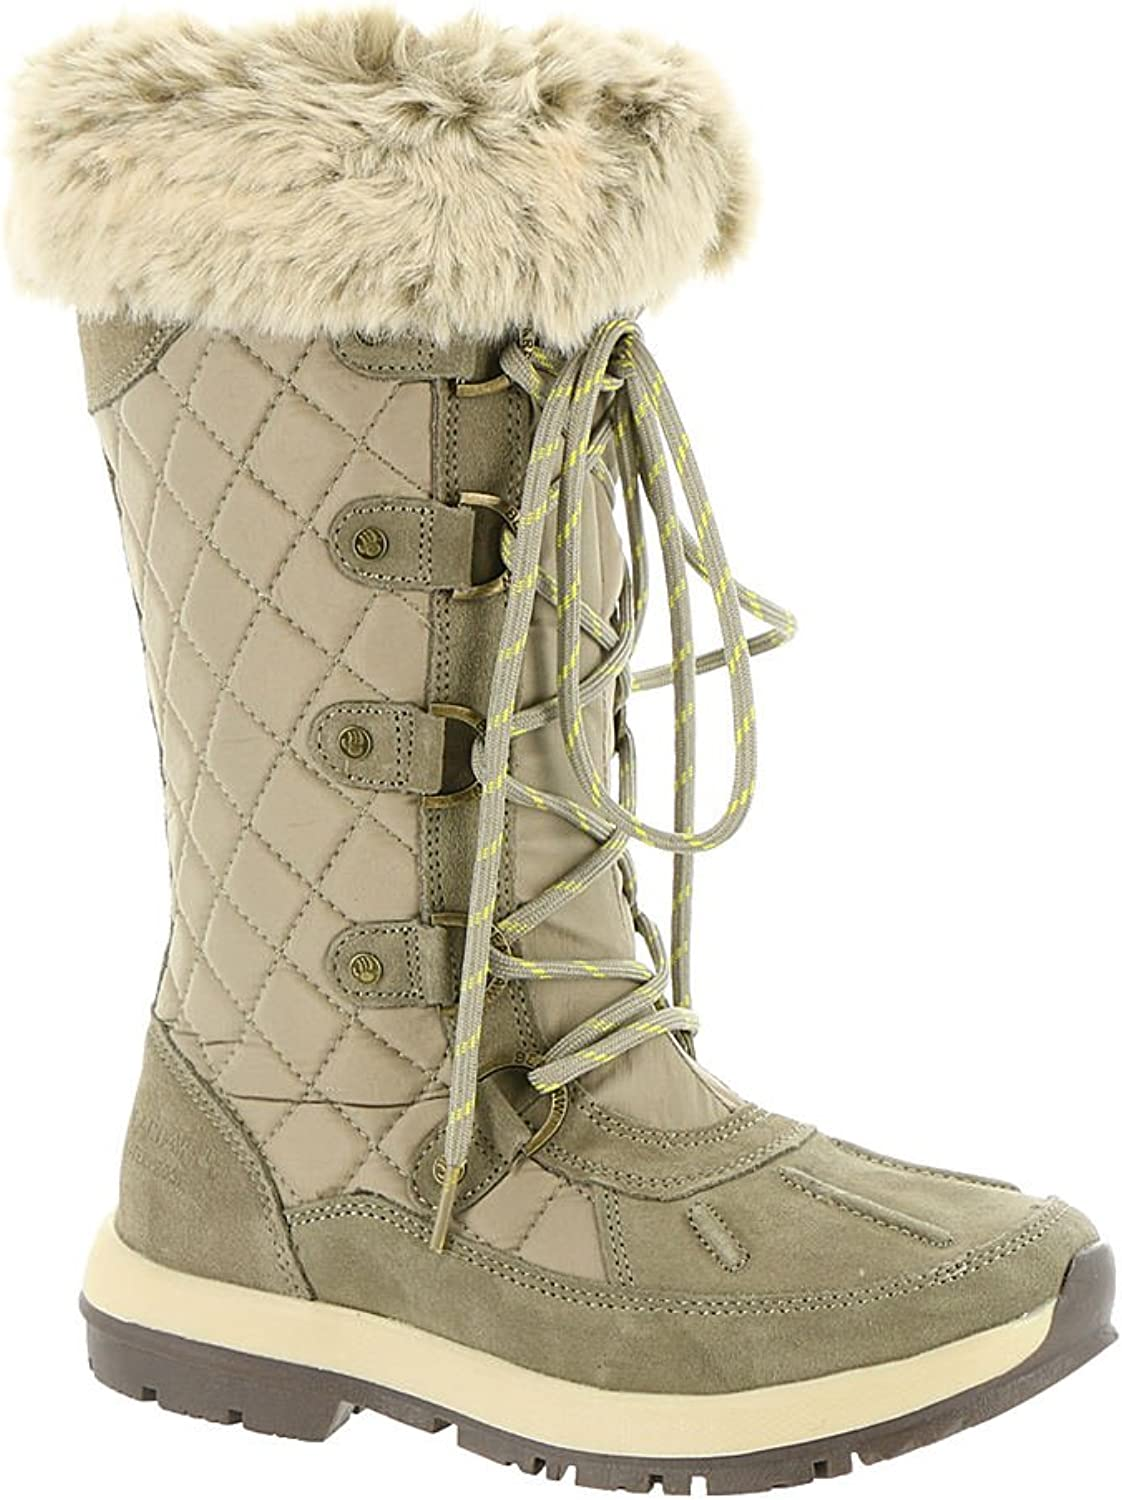 Bearpaw Quinevere Tall Women's Waterproof Snow Boots Duck Toe